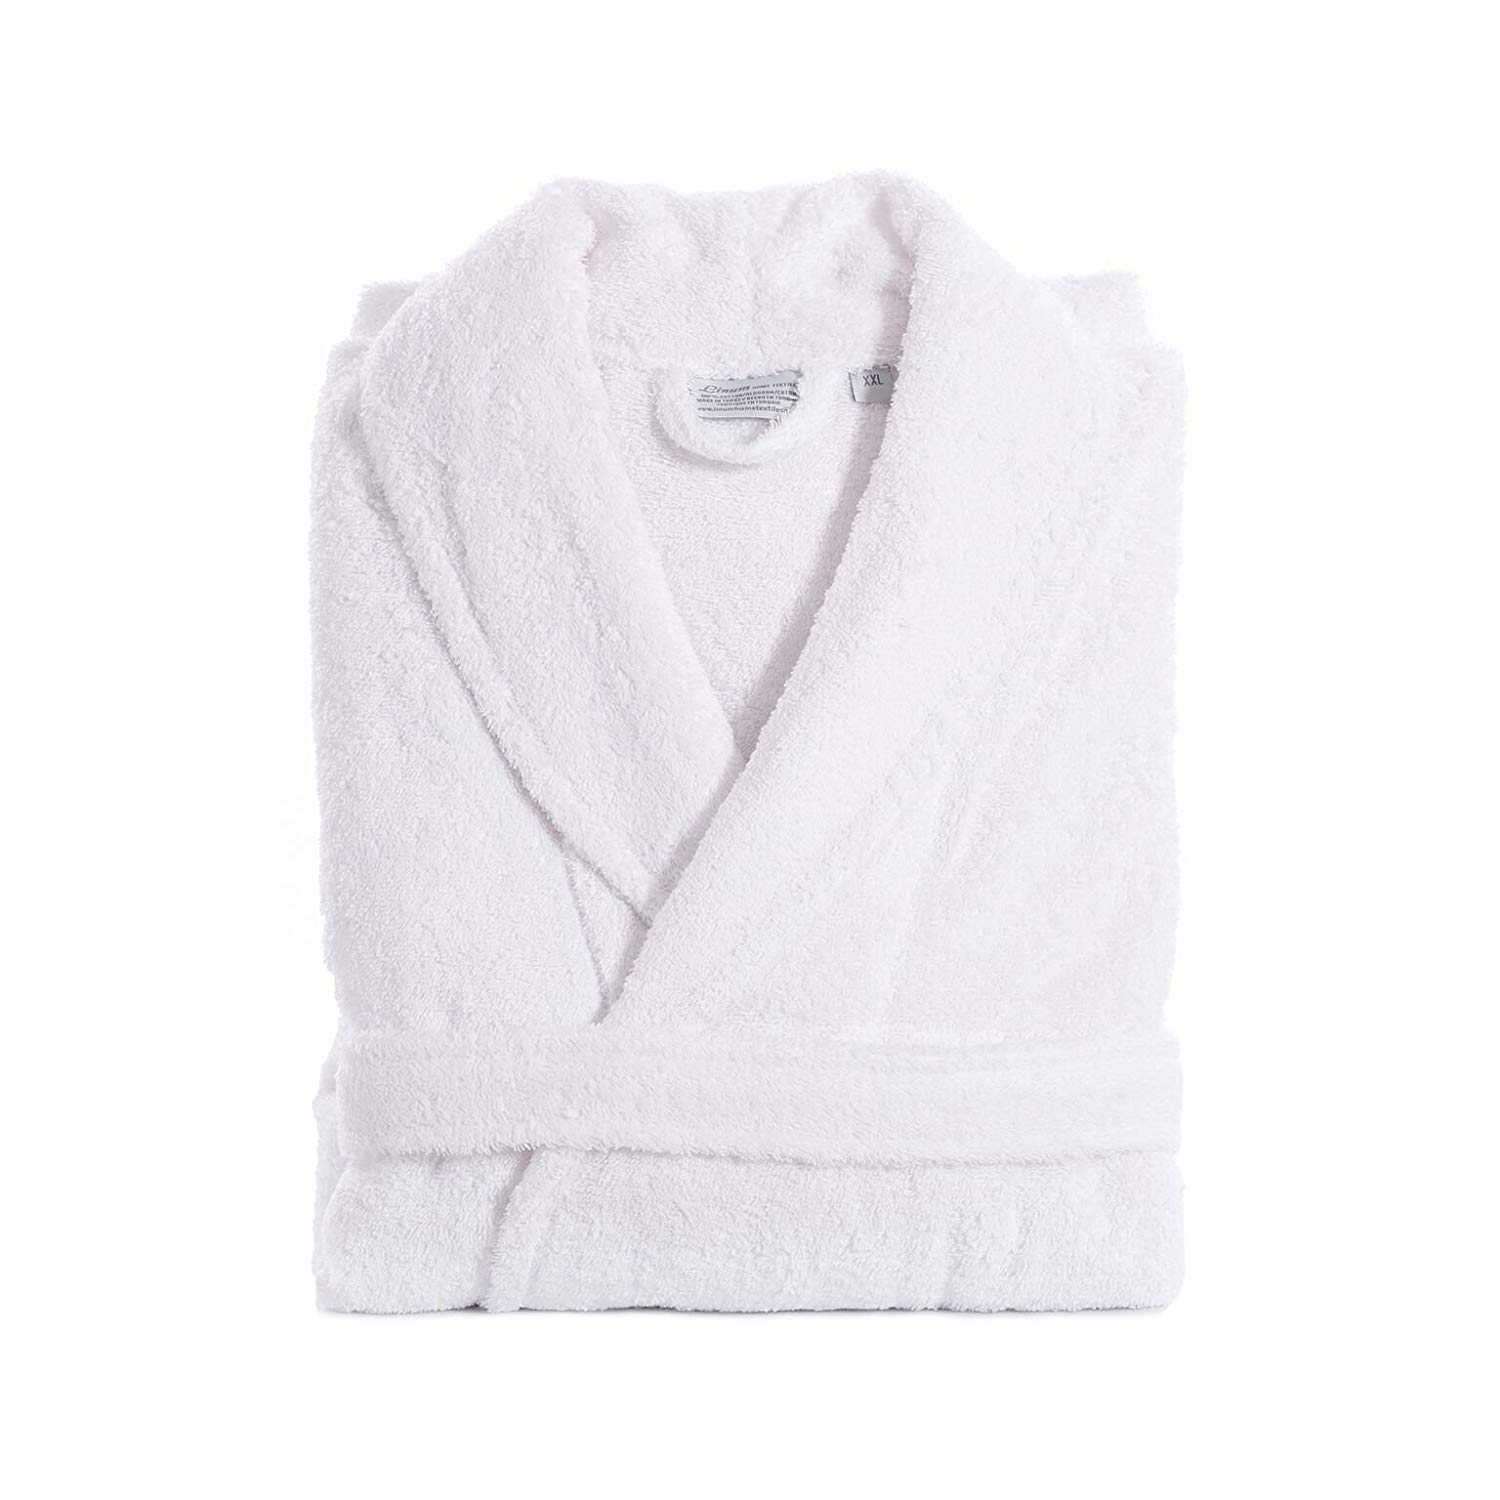 Unisex Terry Cloth Bathrobe